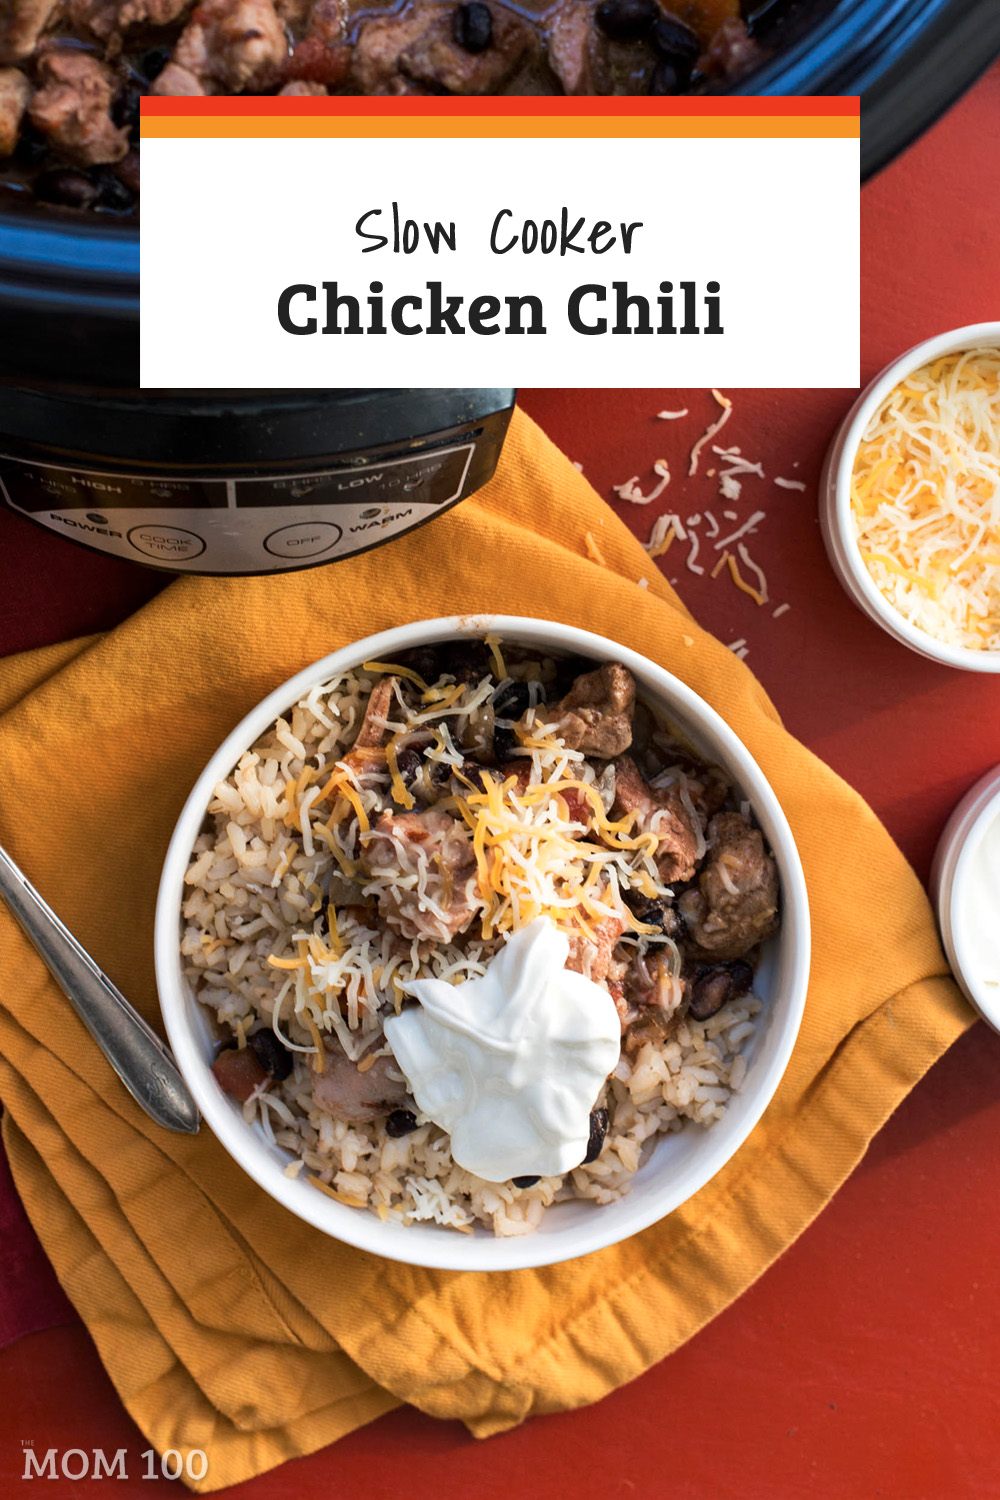 Slow Cooker Chicken Chili: A slow cooker turns juicy chicken thighs and pureed chipotles in adobo sauce into a very satisfying crock pot chicken chili. #slowcooker #instantpot #crockpot